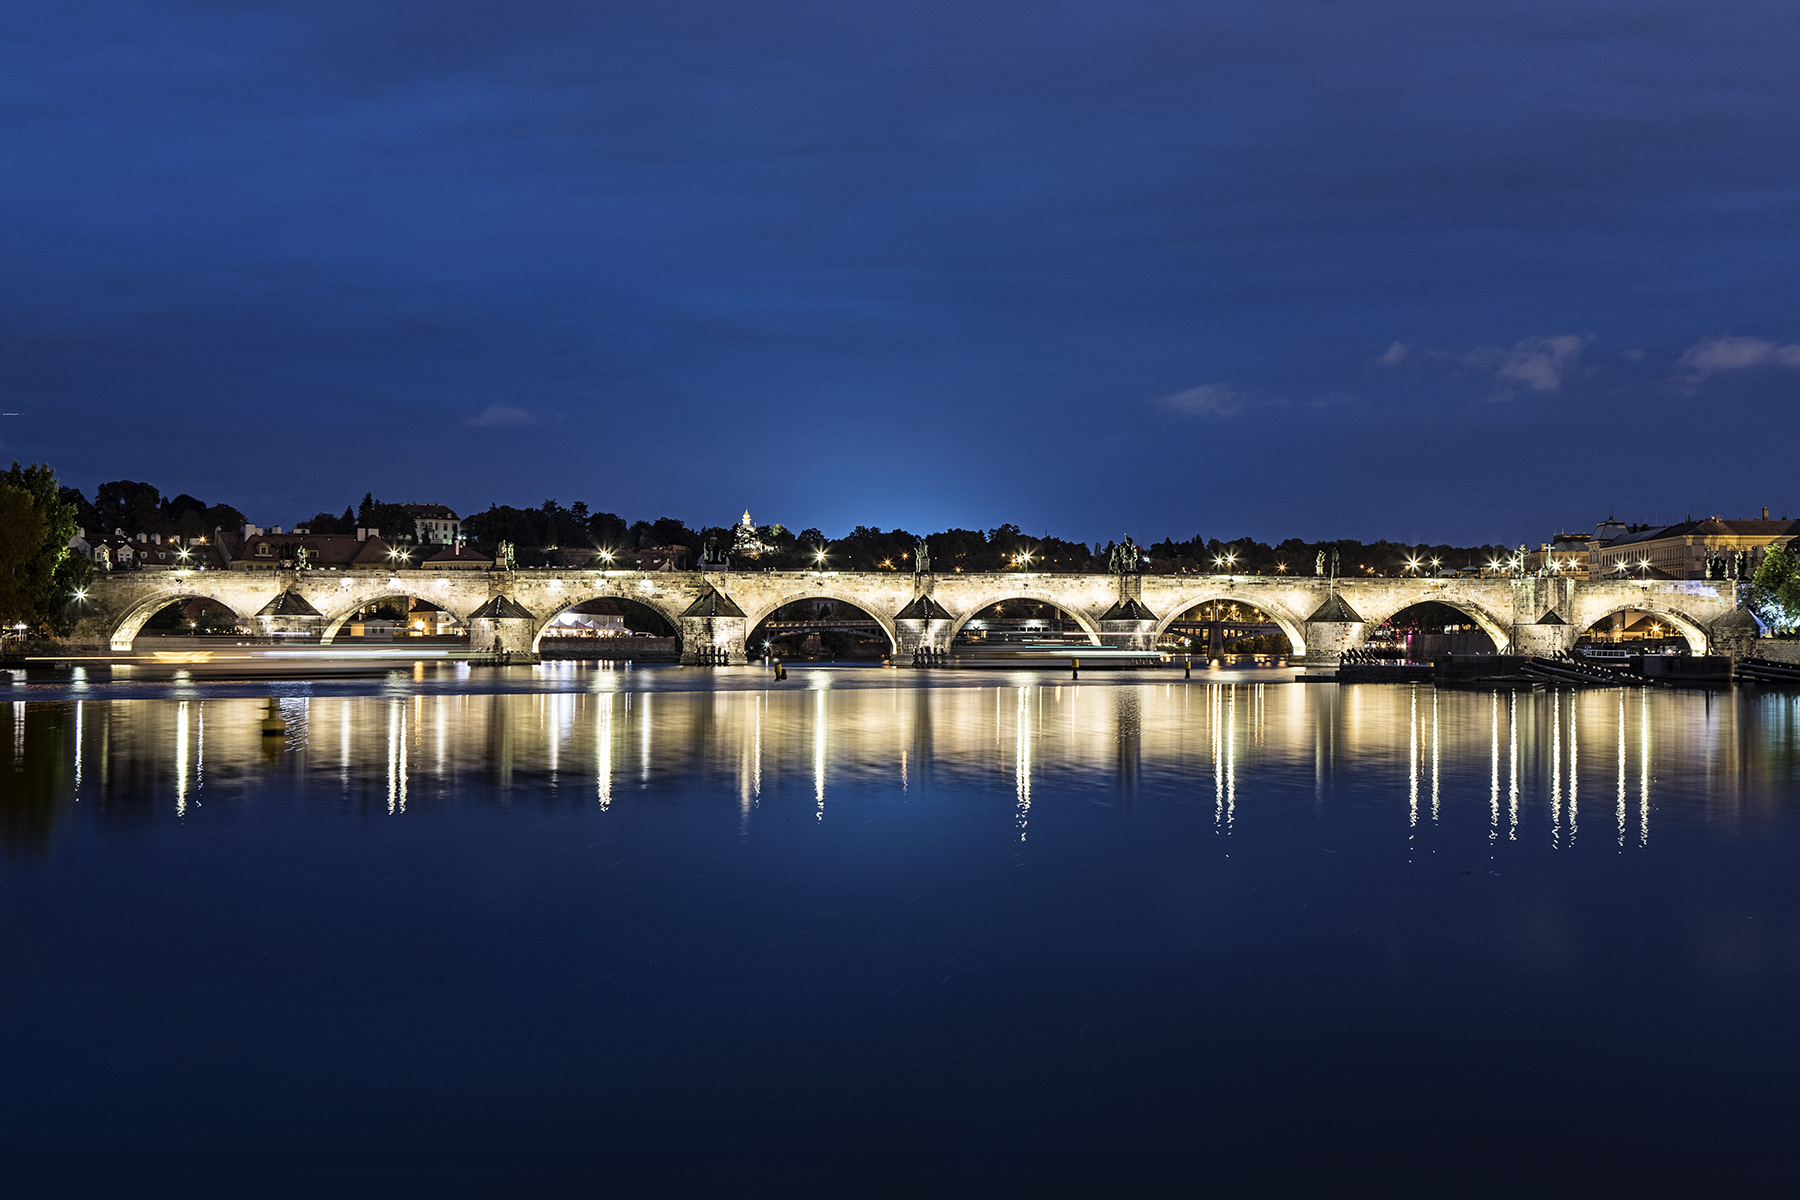 Charles Bridge at dusk.